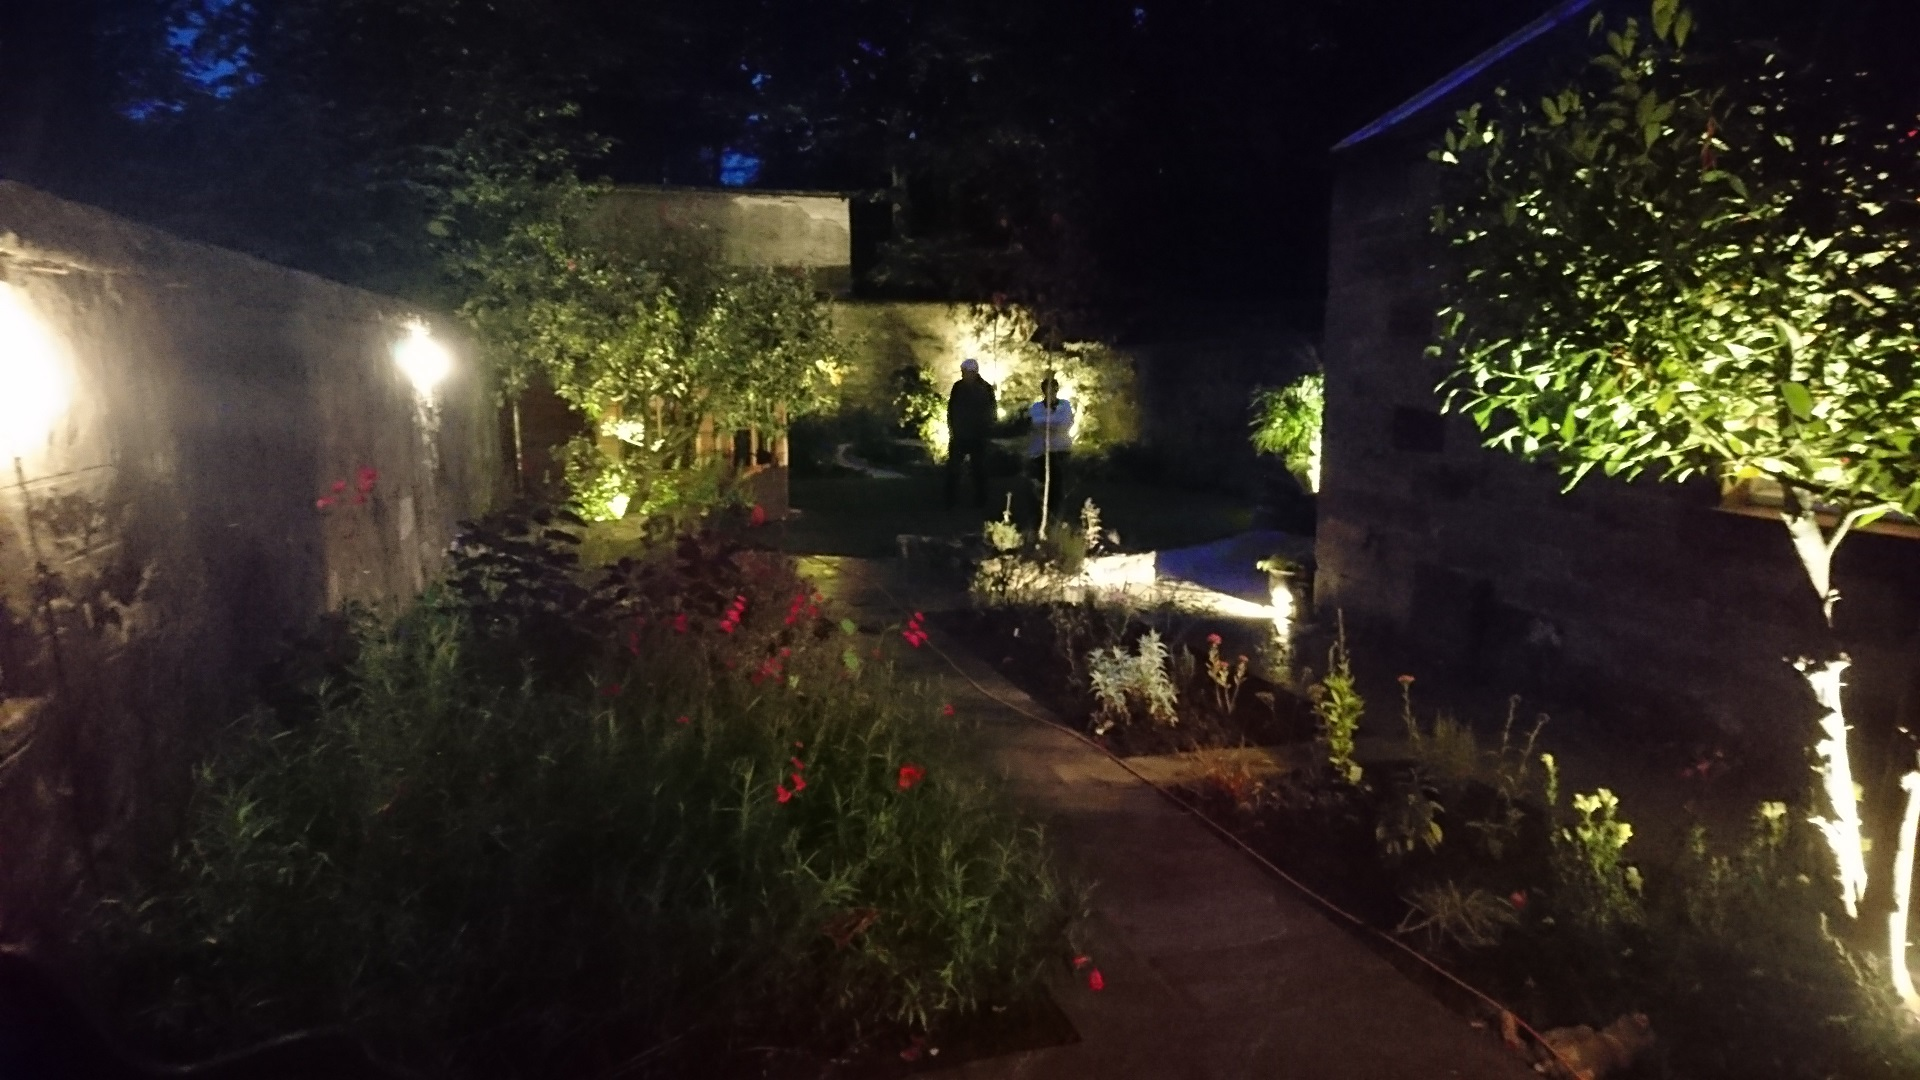 garden entertaining at night Edinburgh